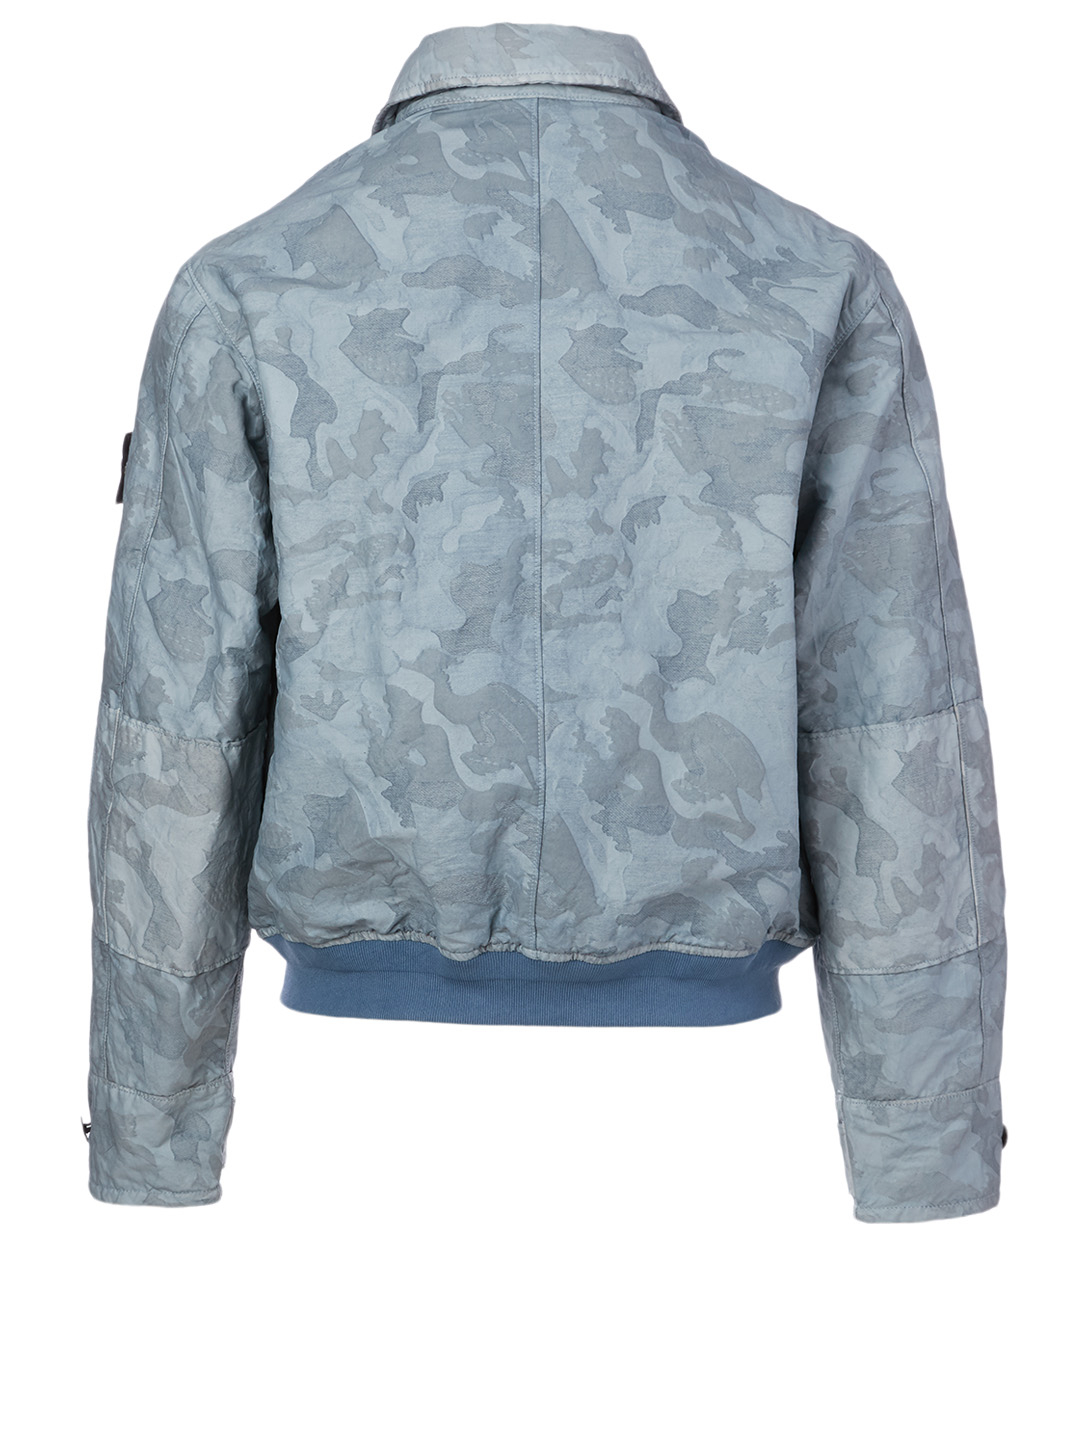 STONE ISLAND Big Loom Jacket In Camo Print Men's Blue